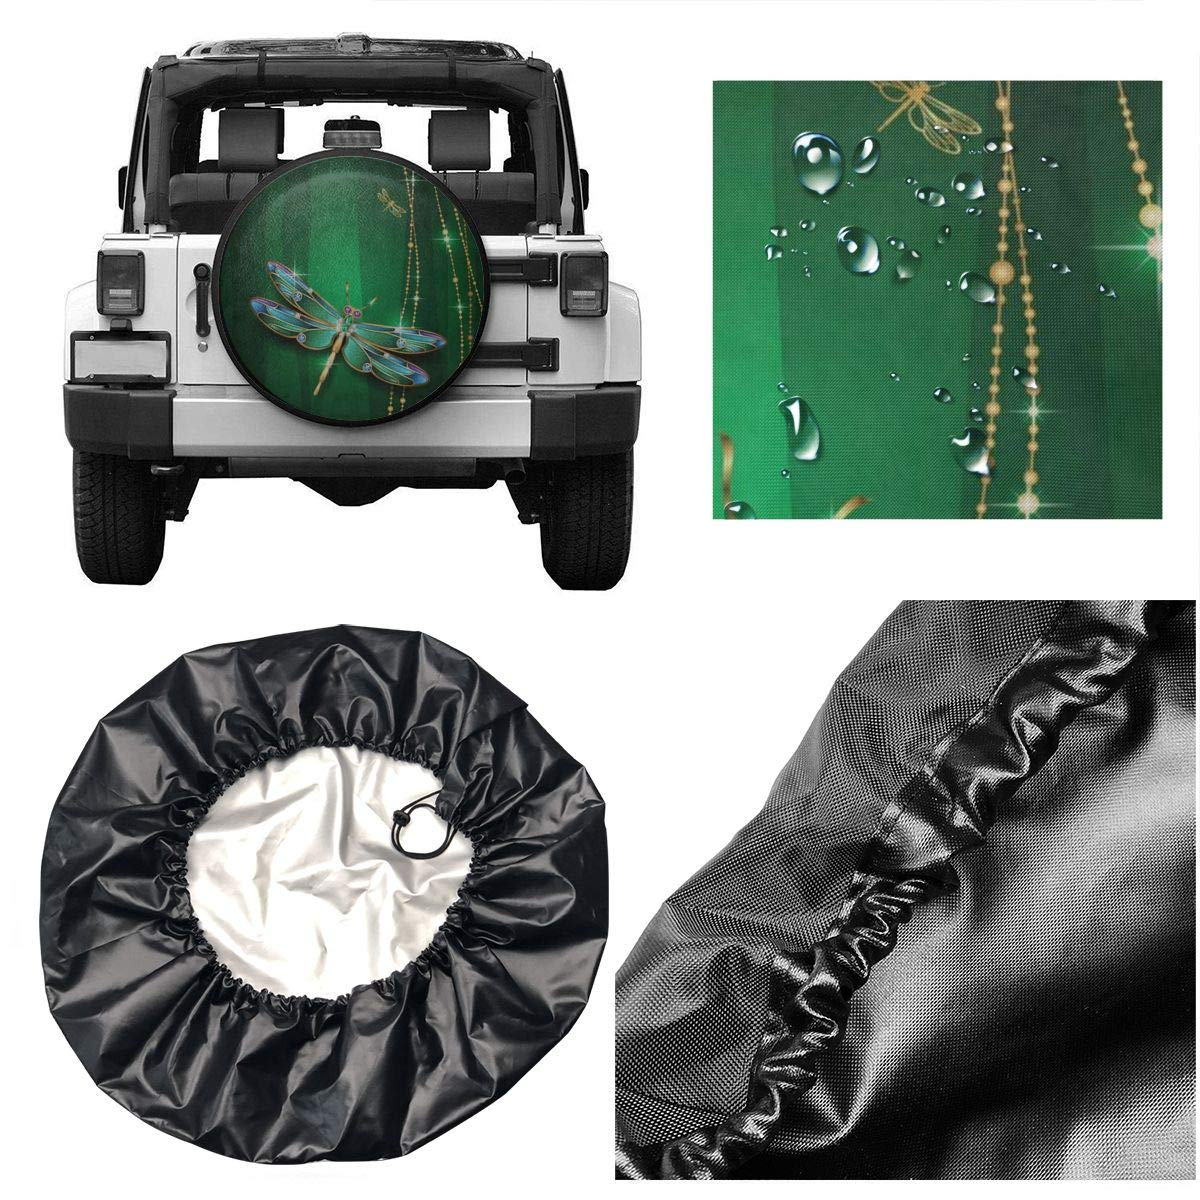 Deaowangluo Spare Tire Cover Jeep Dragonfly Pattern Trailer Truck RV SUV Covers Travel Universal 16 Inch